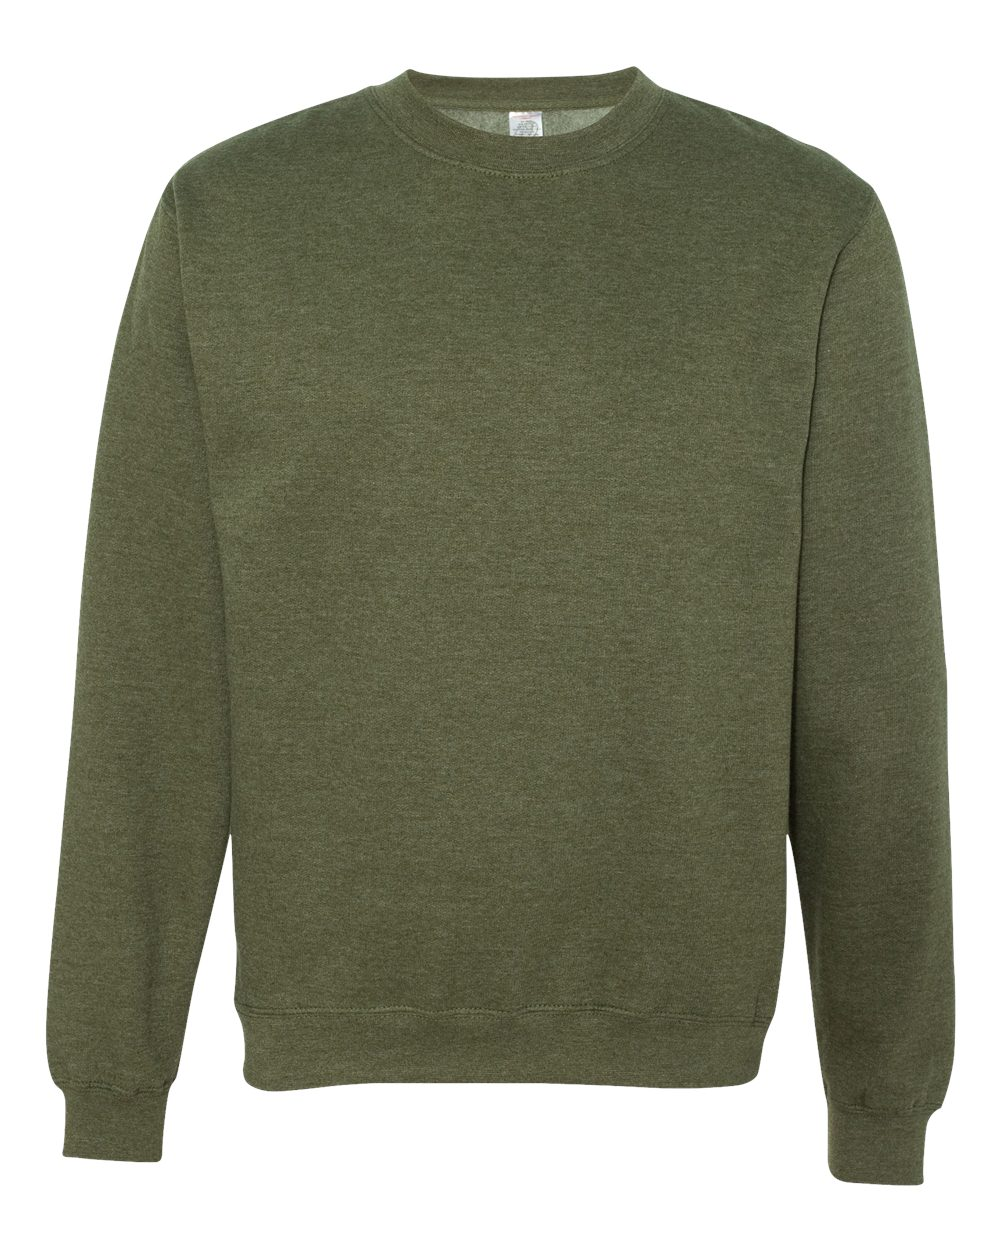 Independent-Trading-Co-Midweight-Crewneck-Sweatshirt-SS3000-up-to-3XL miniature 6